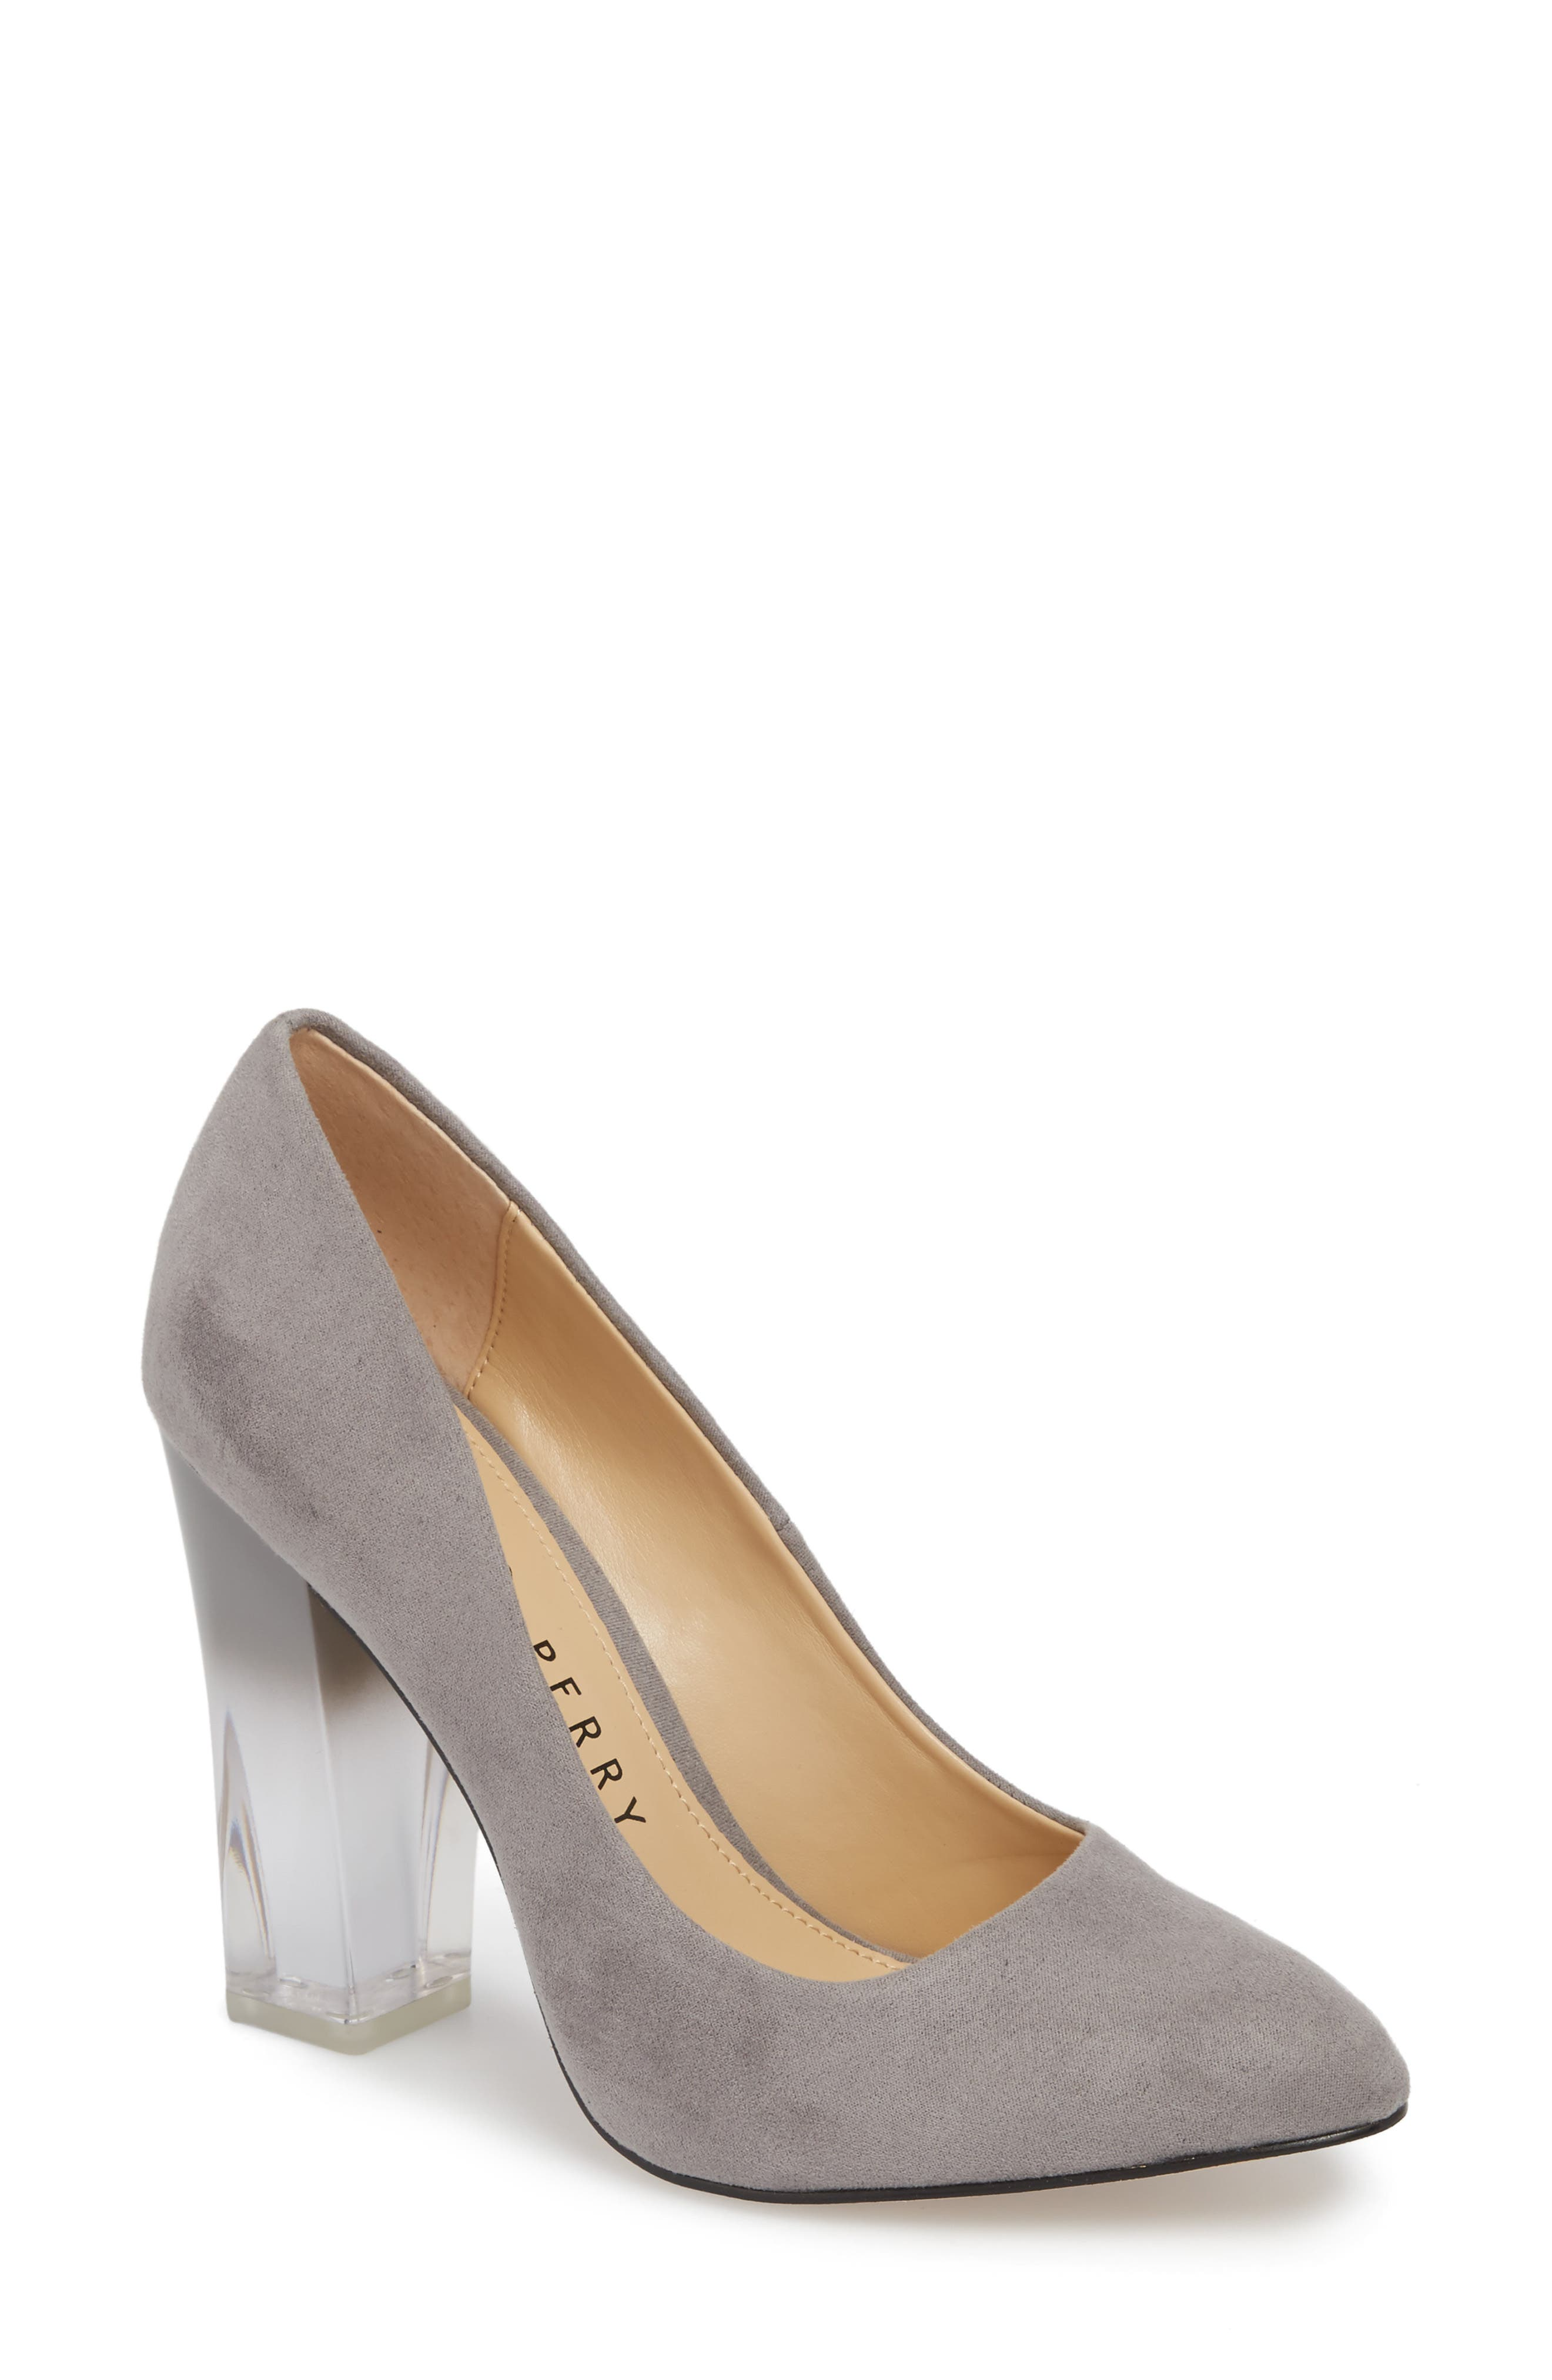 Statement Heel Pump,                             Main thumbnail 1, color,                             DARK NICKEL